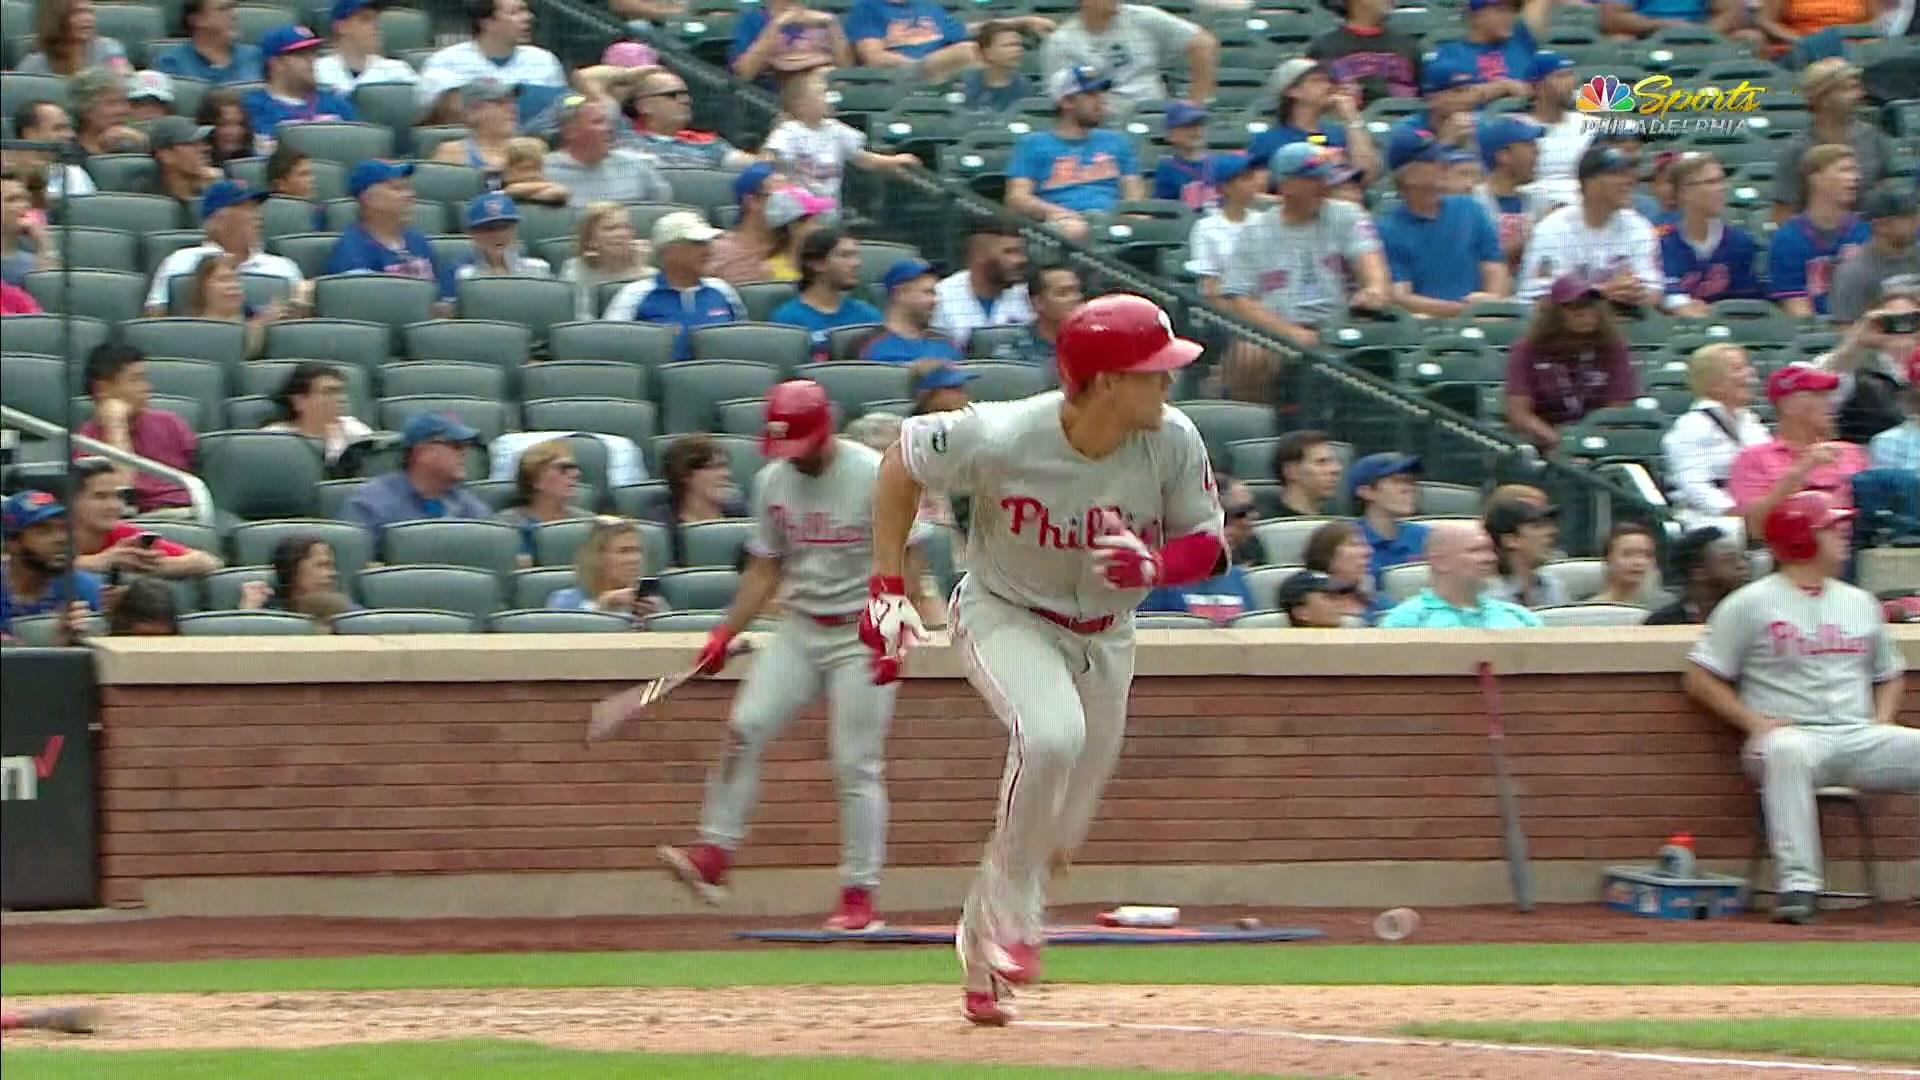 Phillies open in Pittsburgh with a convincing 6-1 win over